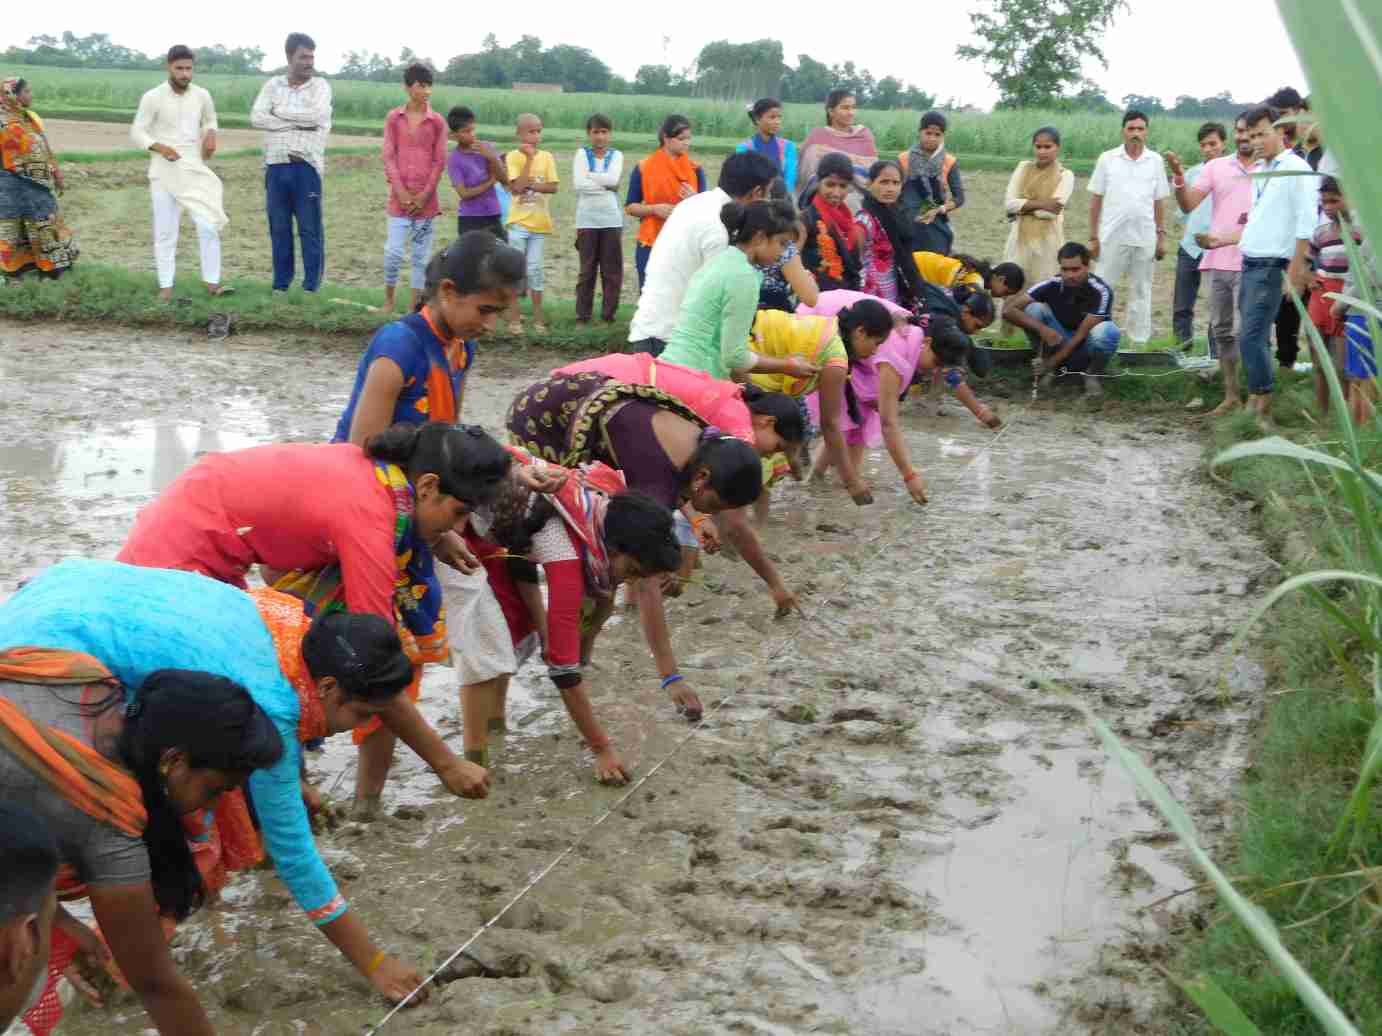 Agricultural-frontline-workers-conduct-an-onsite-demonstration-for-farmers_Hindustan-Unilever-Foundation-marketing principles rural communities